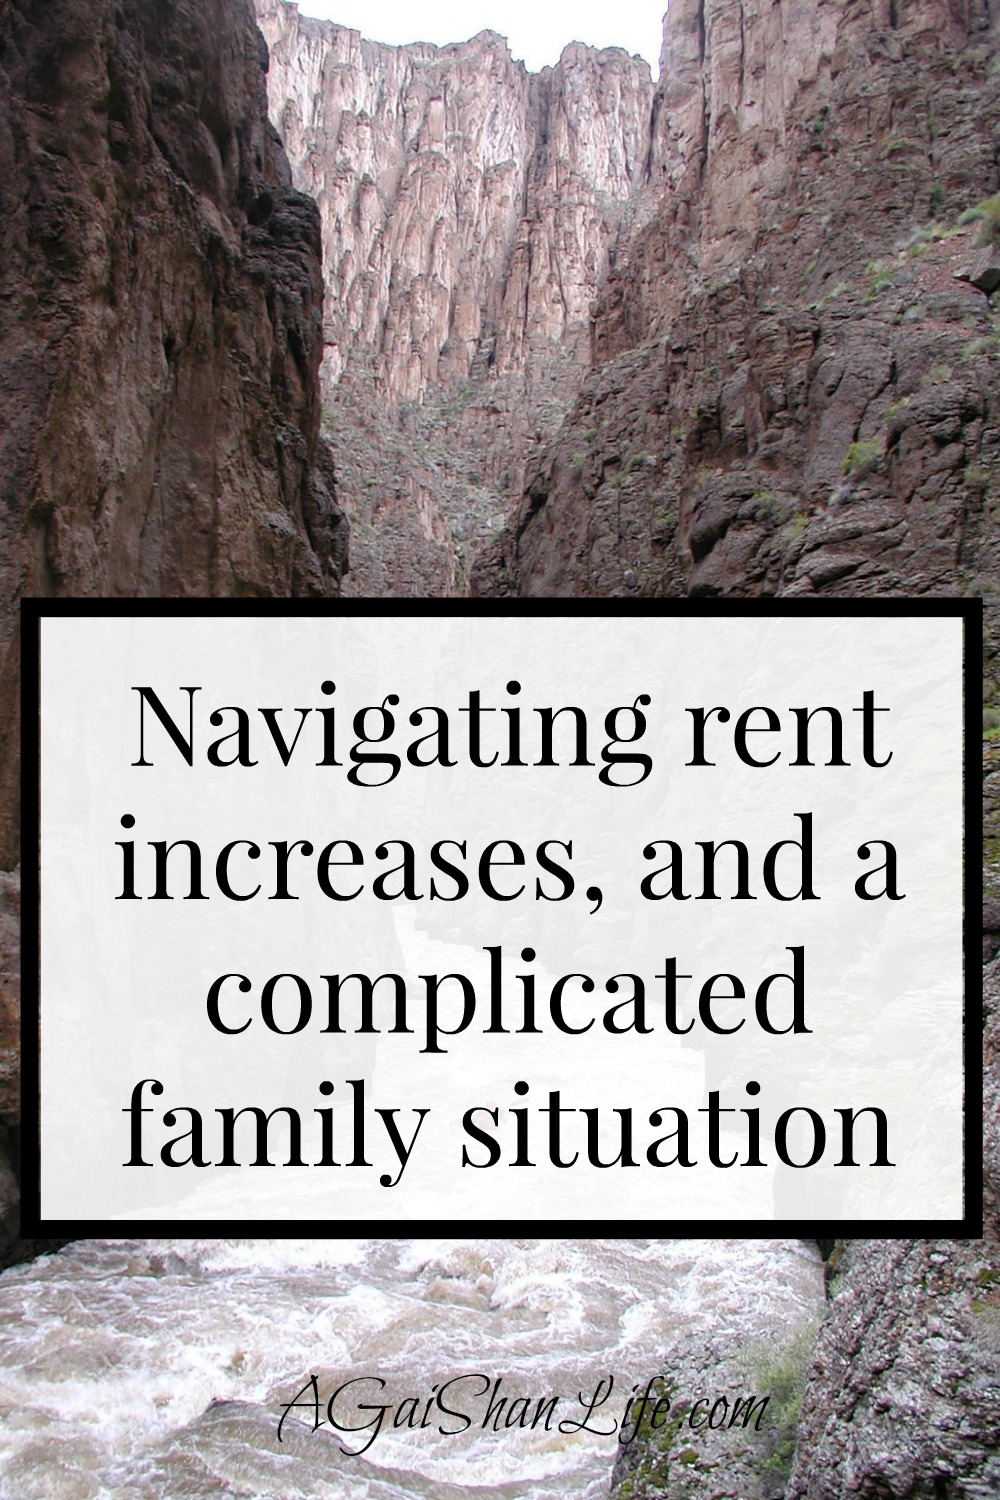 Navigating rent increases and a complicated family situation